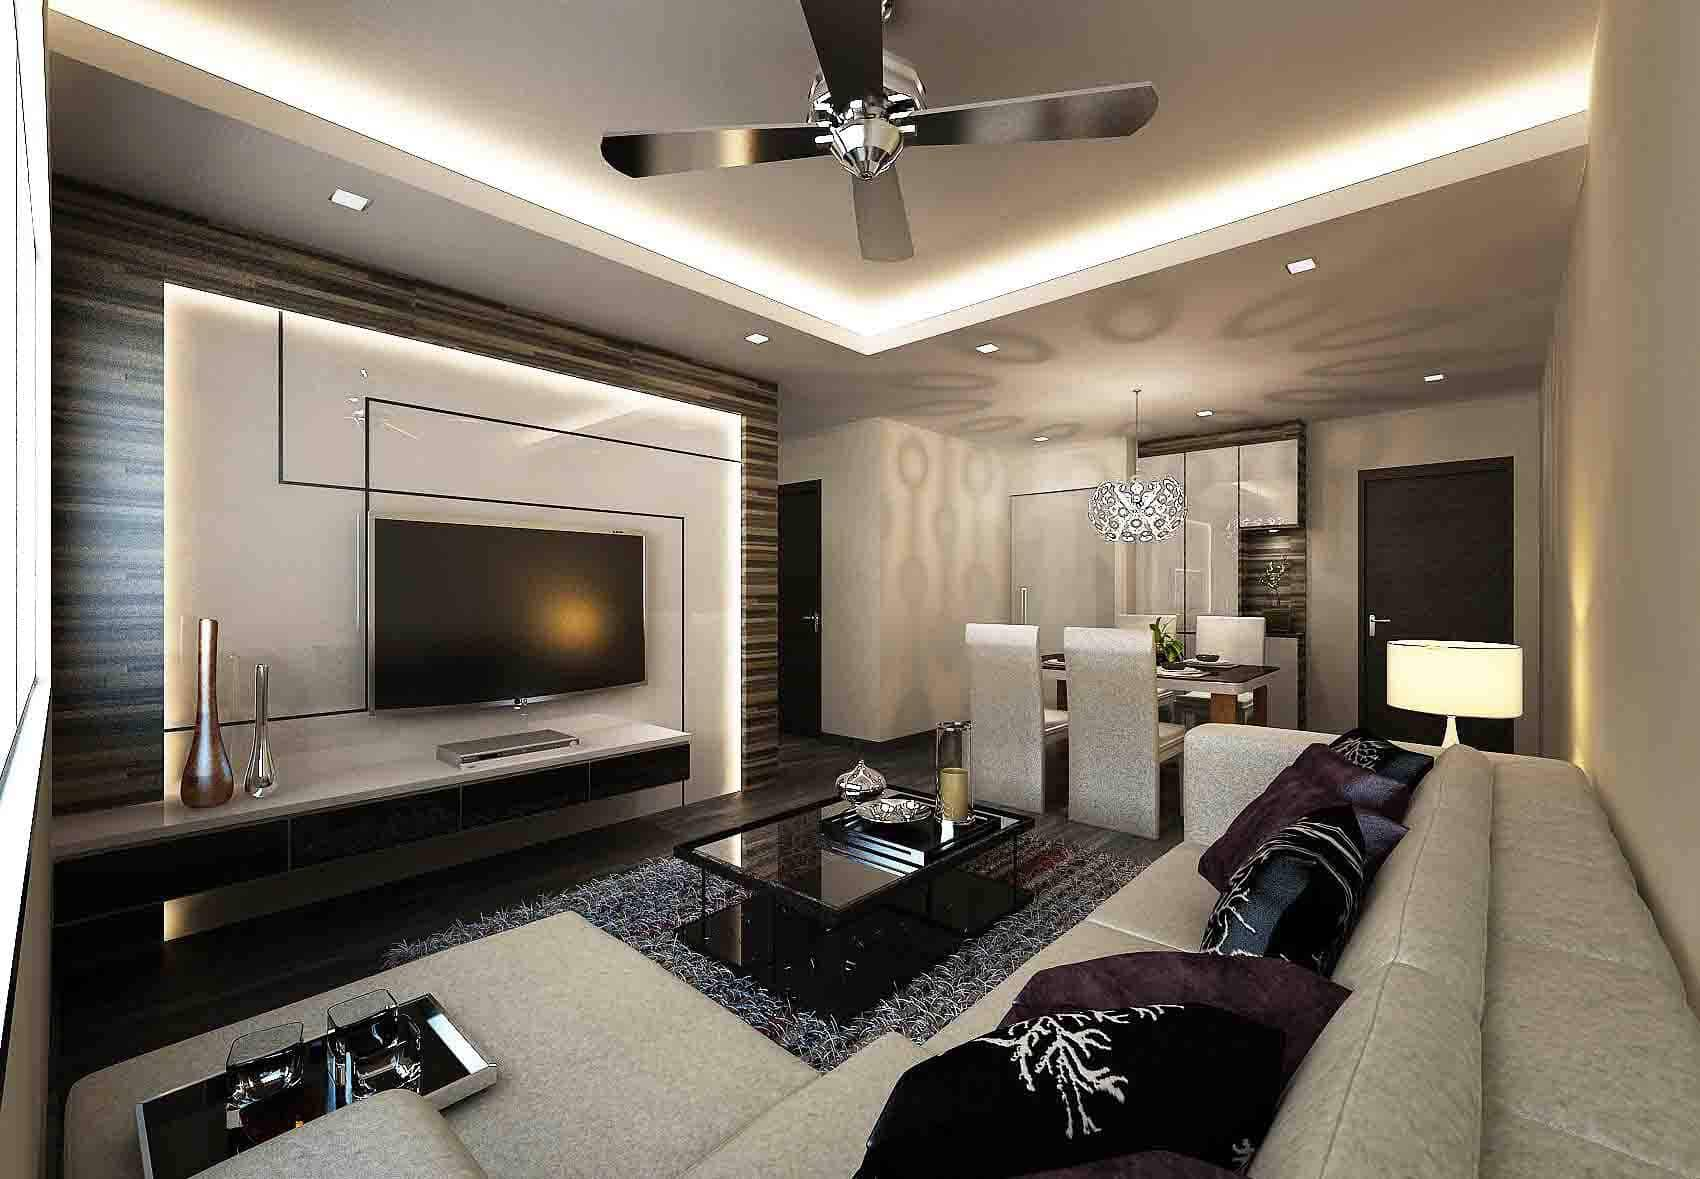 5 elements of a successful living room concept juz interior for The living room design